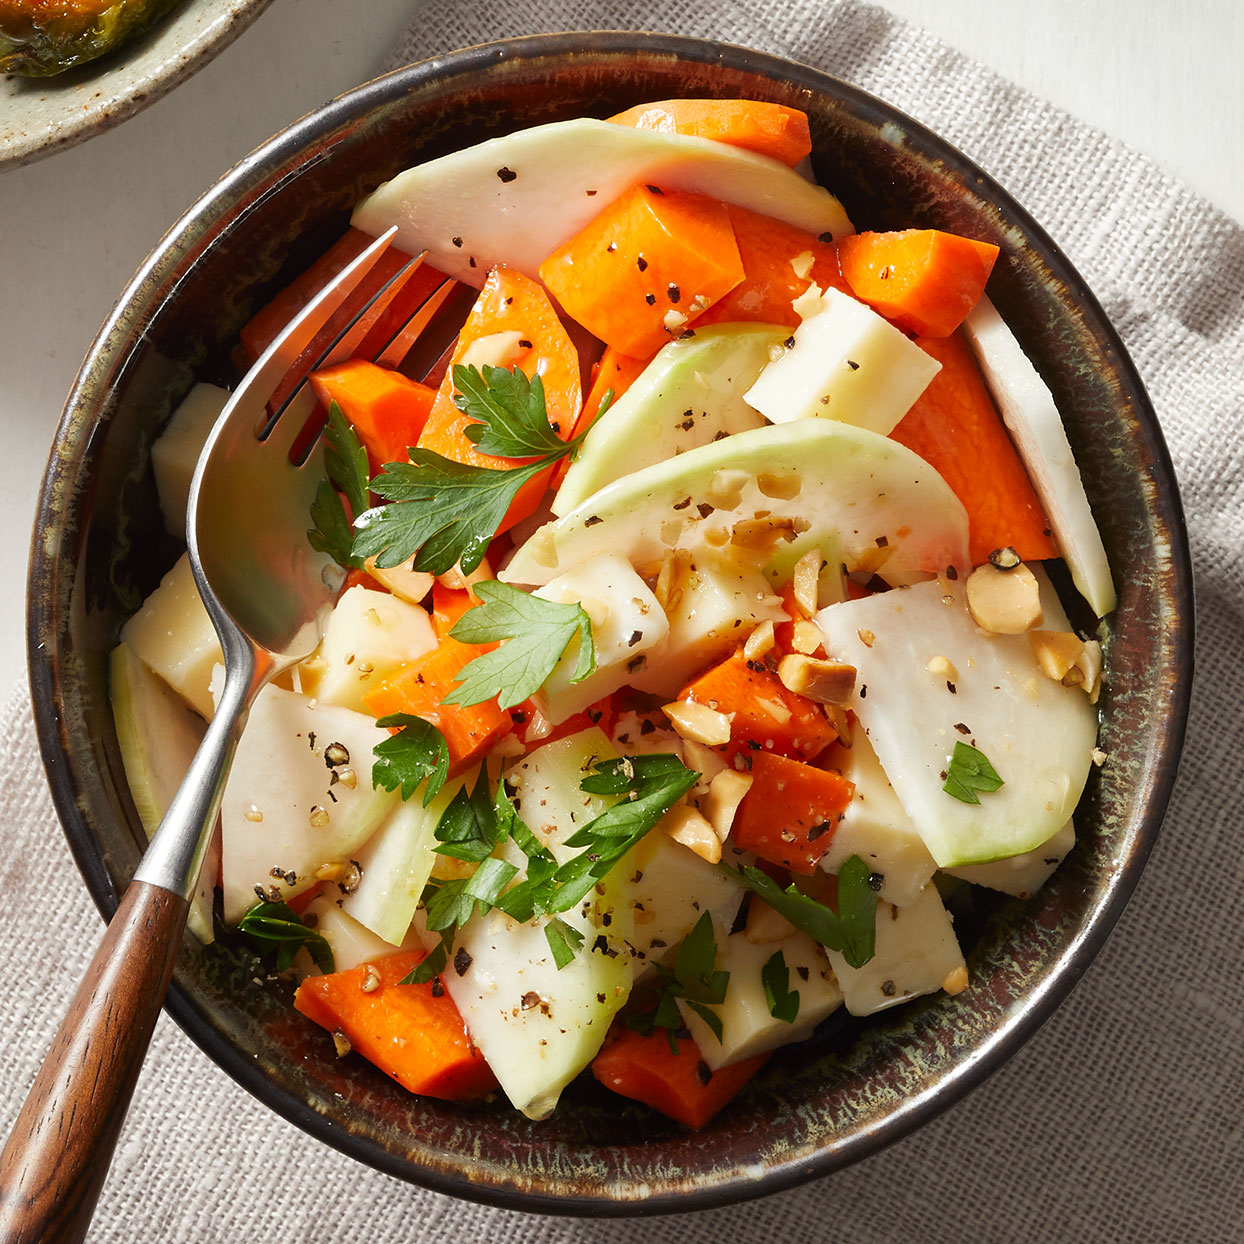 Kohlrabi & Carrot Salad with Cheddar Carolyn Malcoun